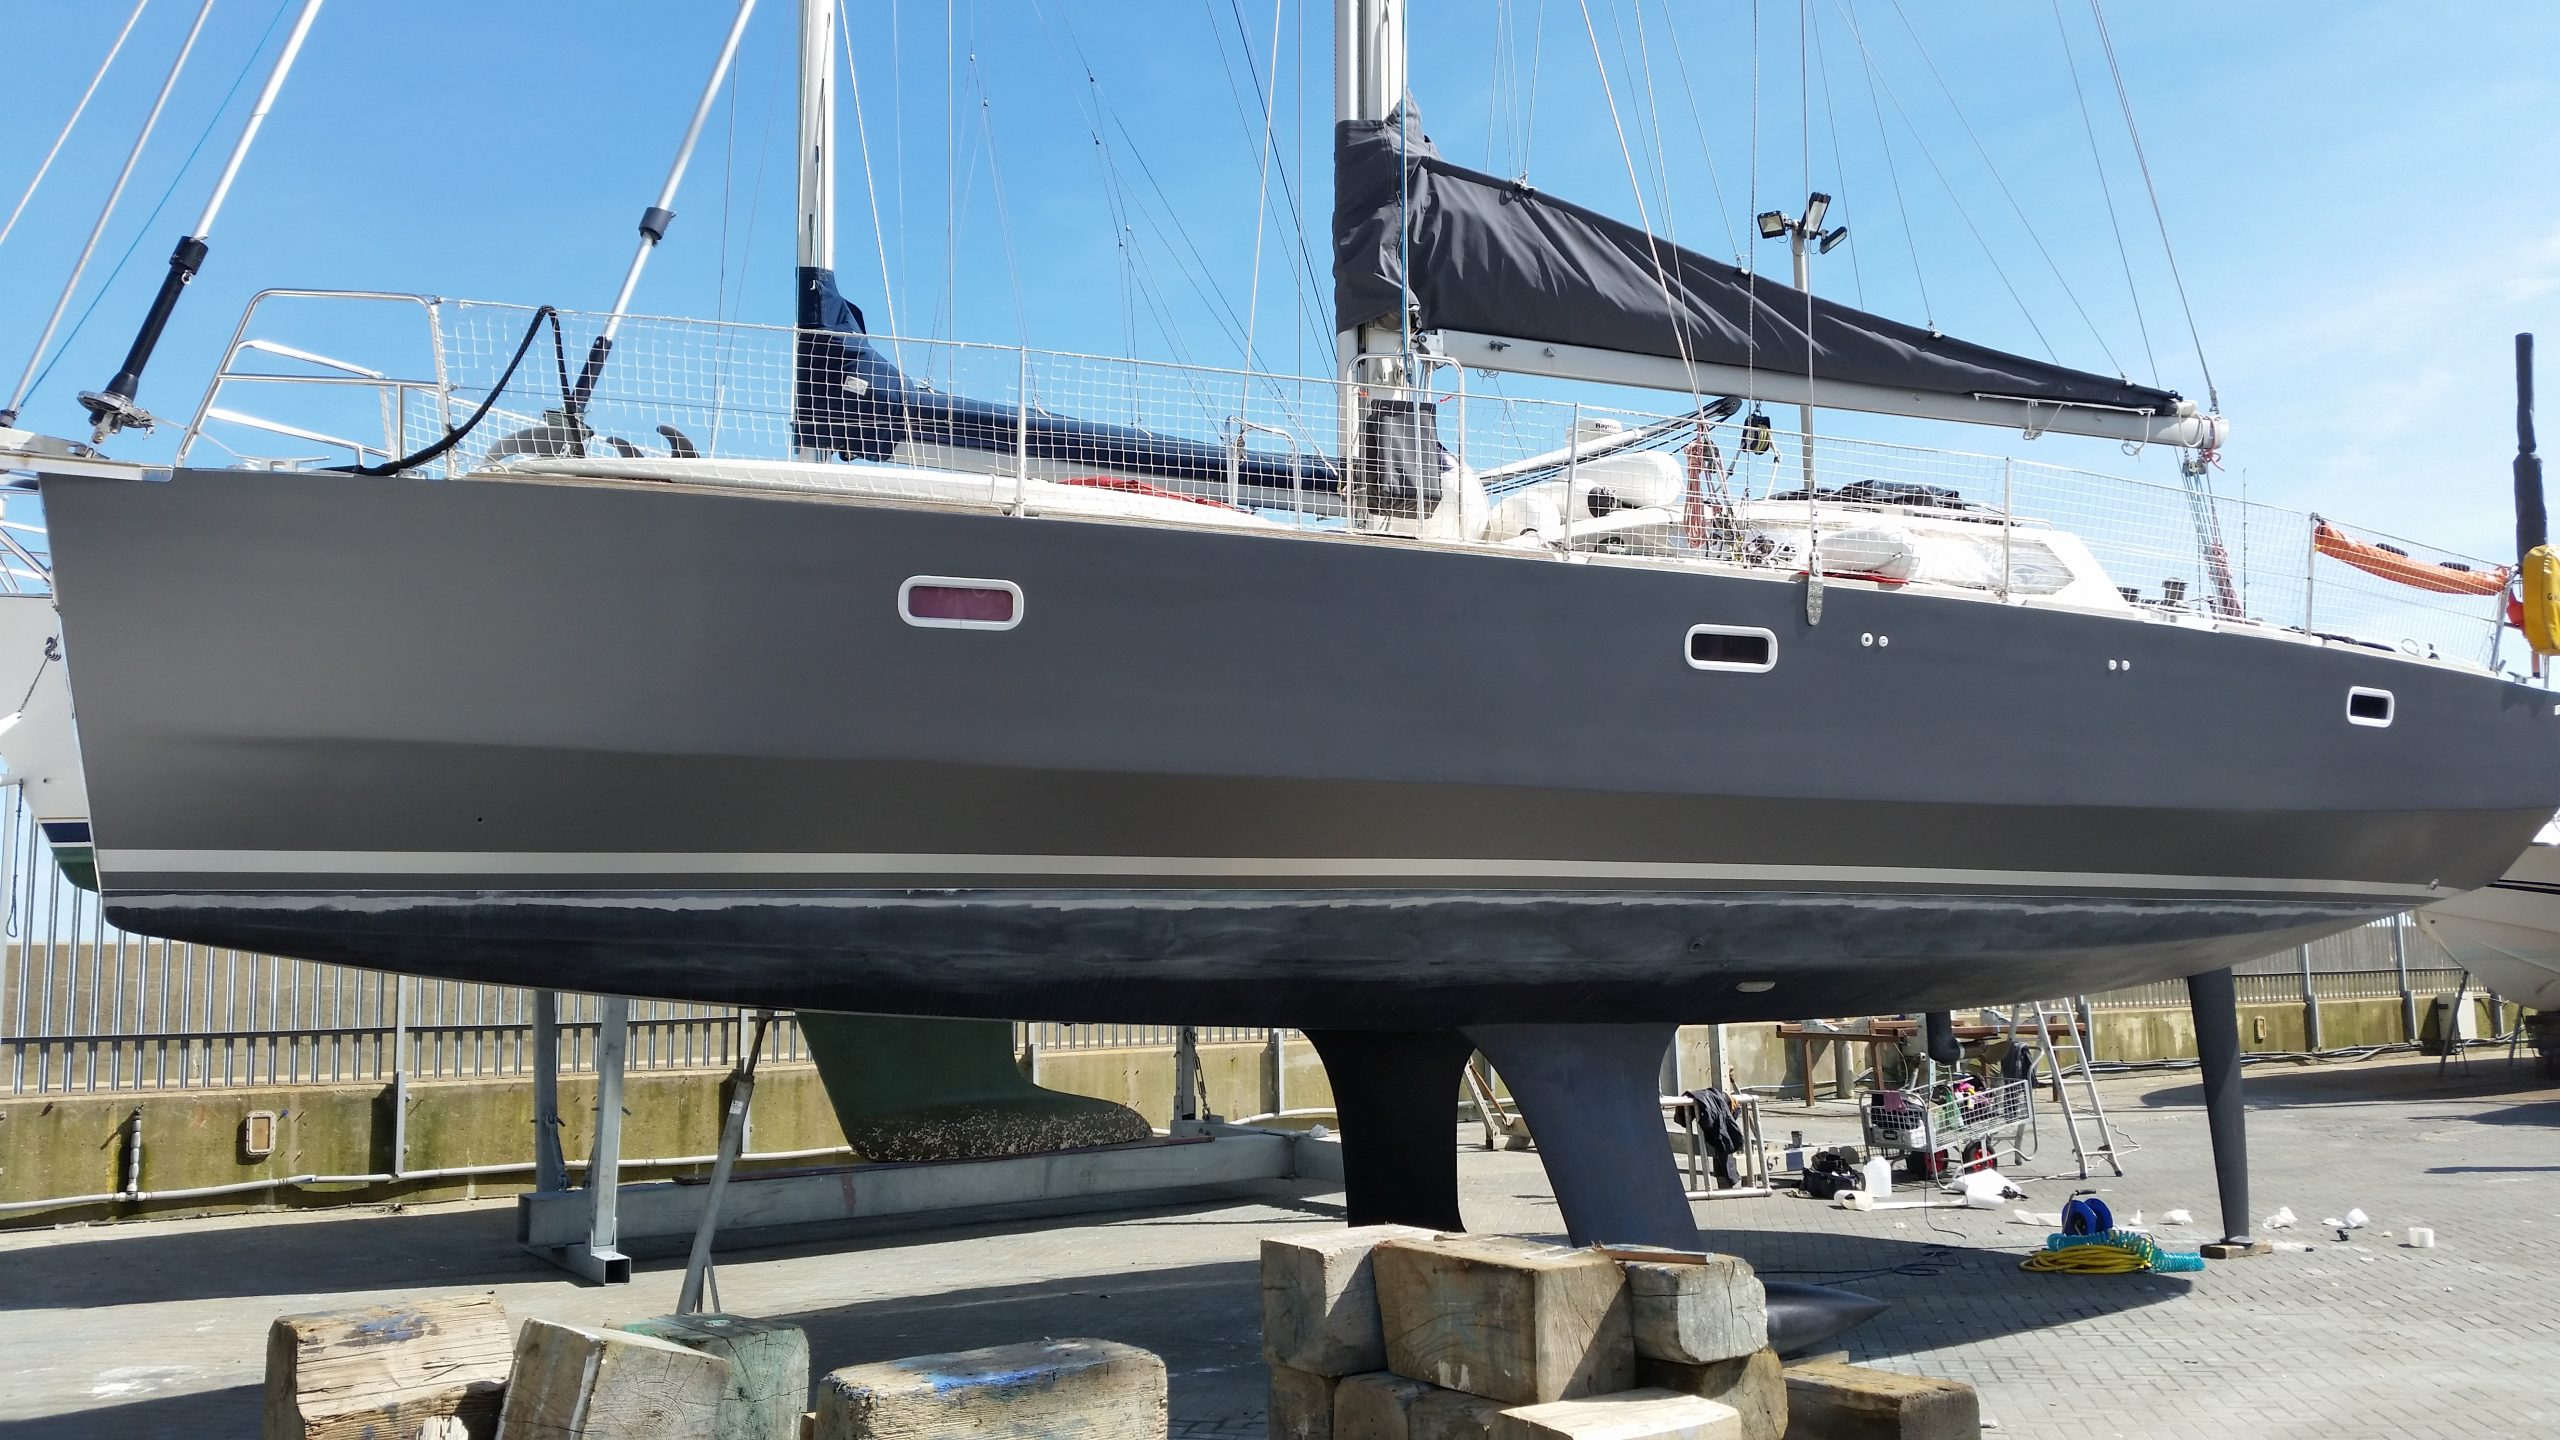 40' Sailing yacht wrapped